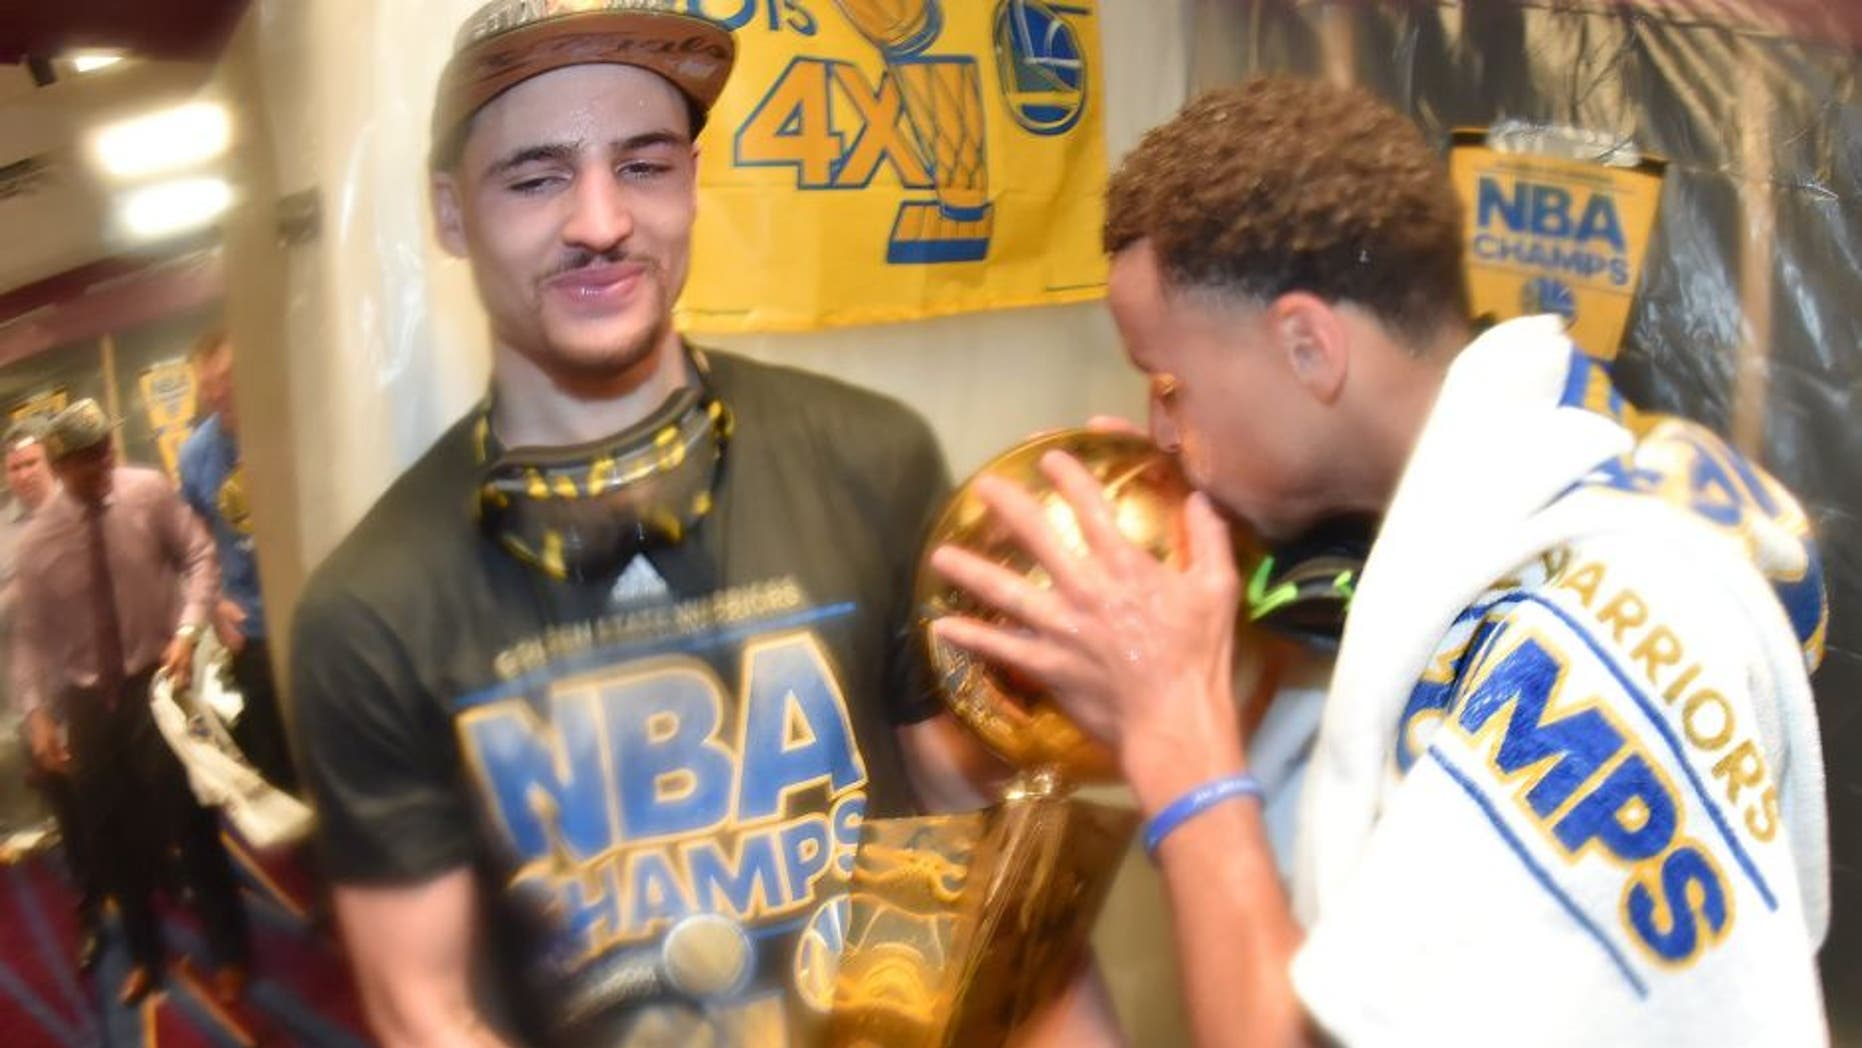 CLEVELAND, OH - JUNE 16: Klay Thompson #11 and Stephen Curry #30 of the Golden State Warriors celebrate with the Larry O'Brien Championship Trophy in the locker room after a victory over the Cleveland Cavaliers in Game Six to win the 2015 NBA Finals at The Quicken Loans Arena on June 16, 2015 in Cleveland, Ohio. NOTE TO USER: User expressly acknowledges and agrees that, by downloading and/or using this Photograph, user is consenting to the terms and conditions of the Getty Images License Agreement. Mandatory Copyright Notice: Copyright 2015 NBAE (Photo by Andrew D. Bernstein/NBAE via Getty Images)